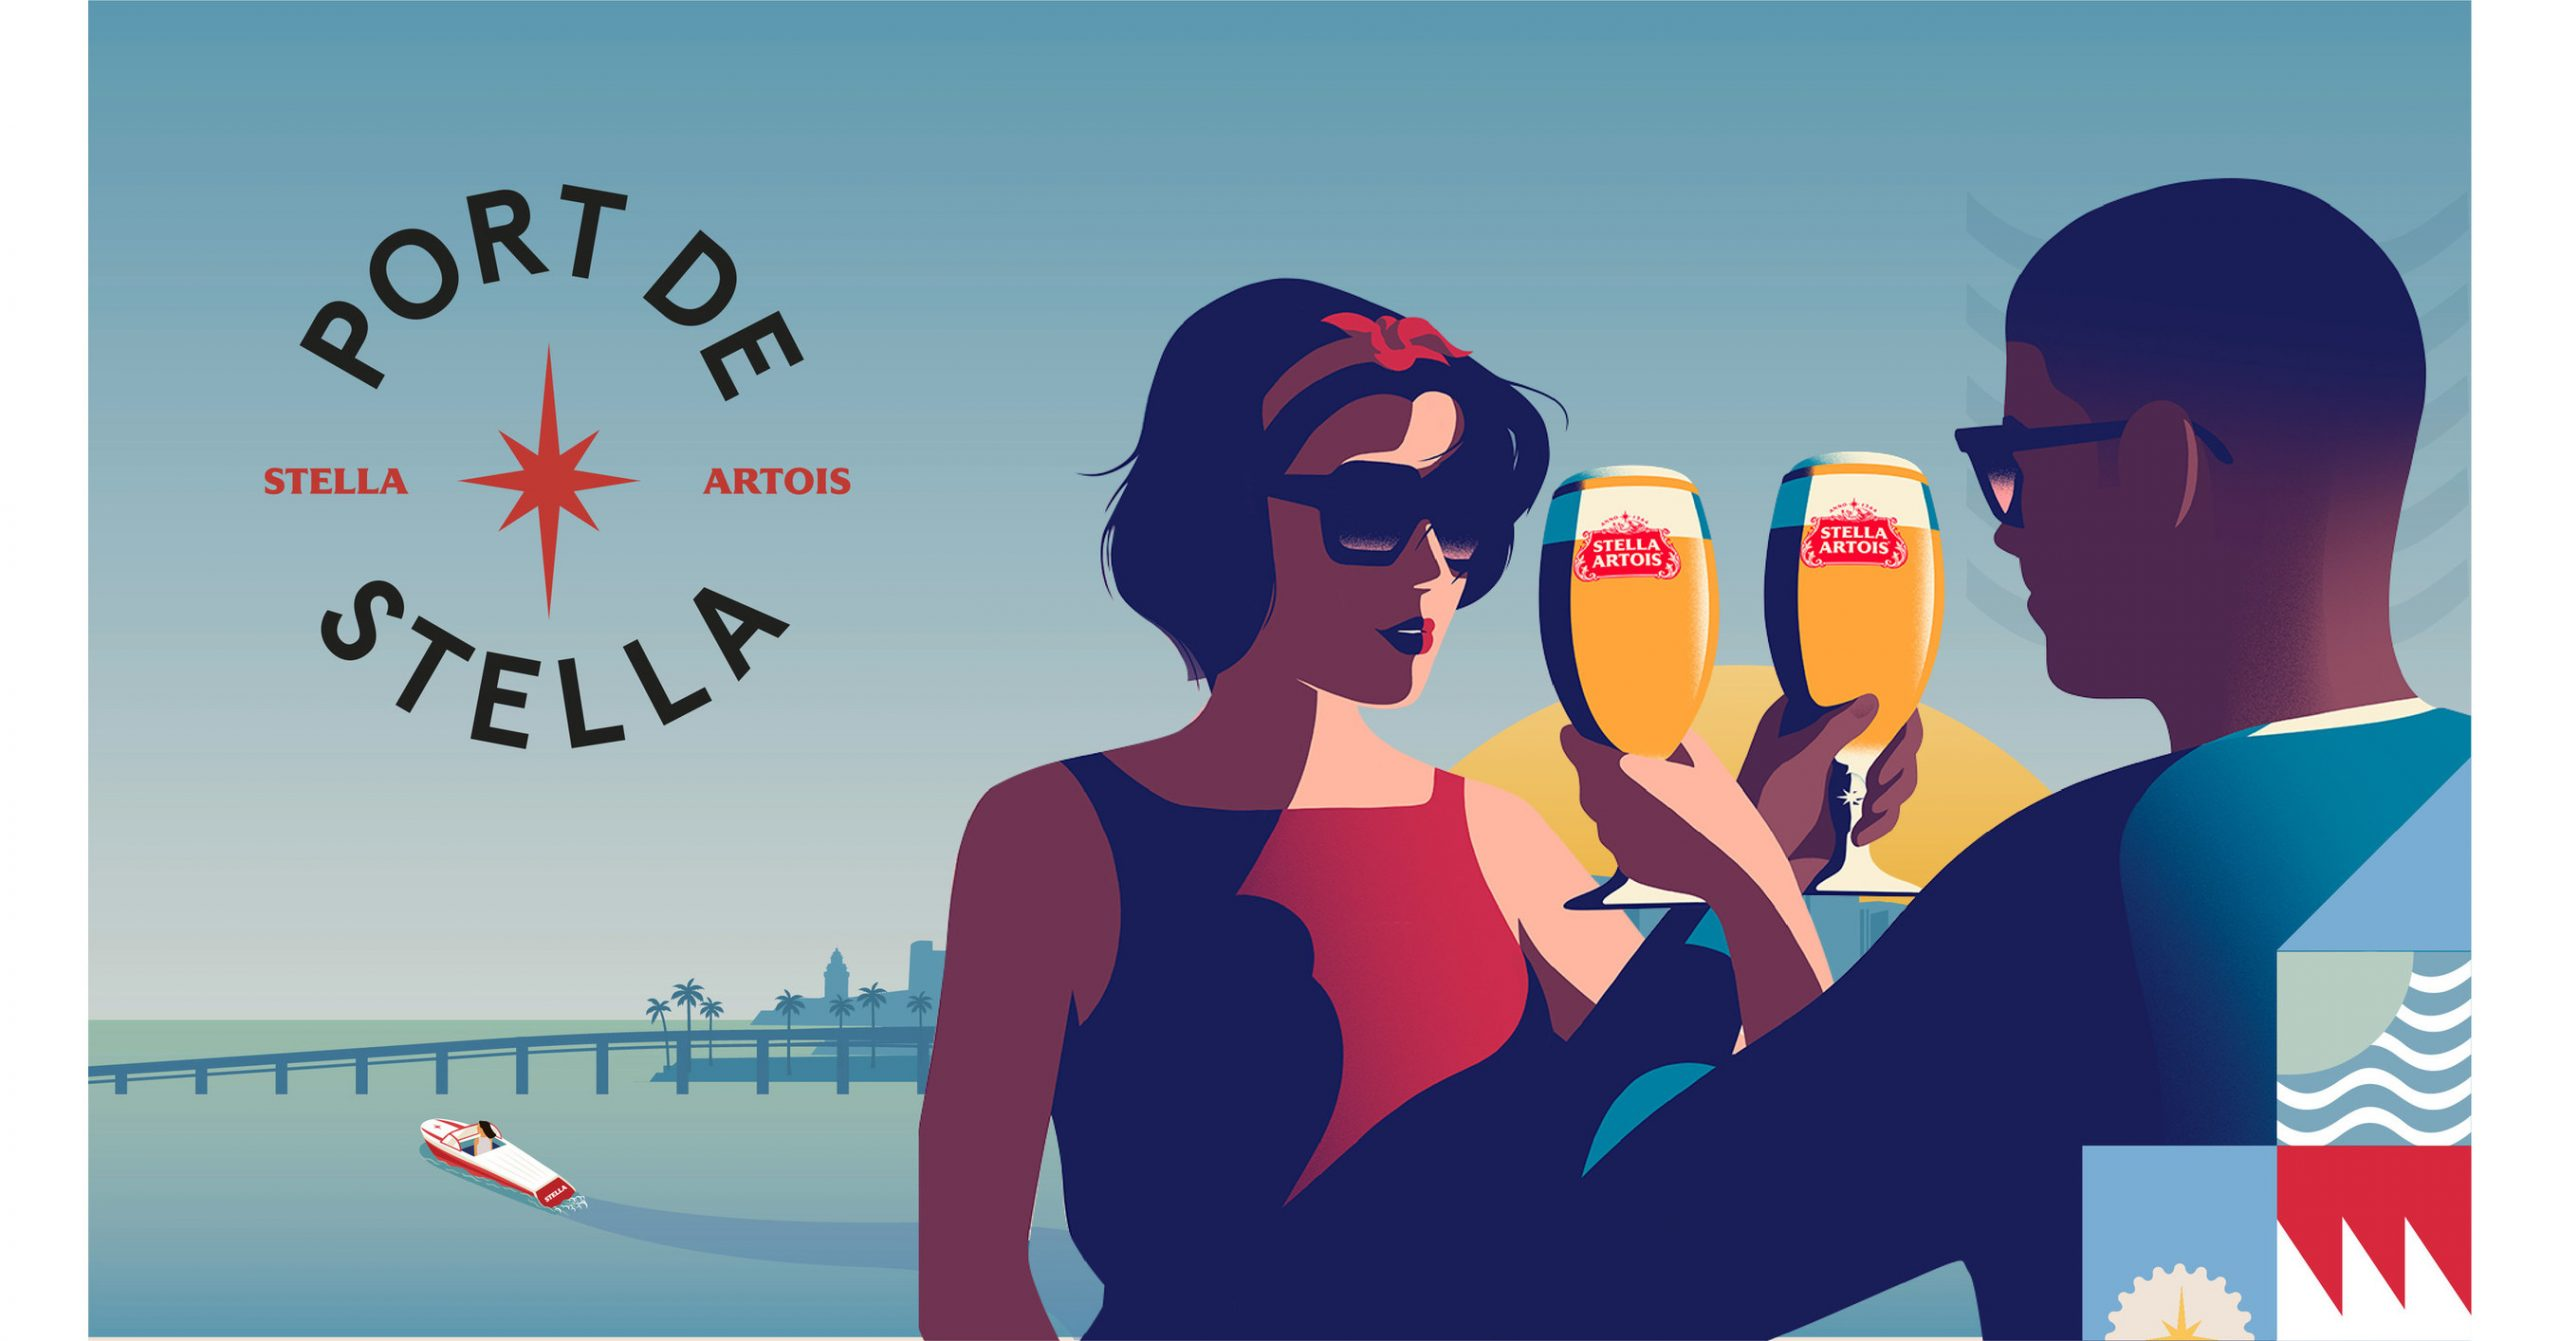 Stella Artois Docks 'port De Stella' In Miami For Debut Ahead Of Super Bowl Liv Alongside Host Priyanka Chopra Jonas And Special Guest Karamo Brown photo